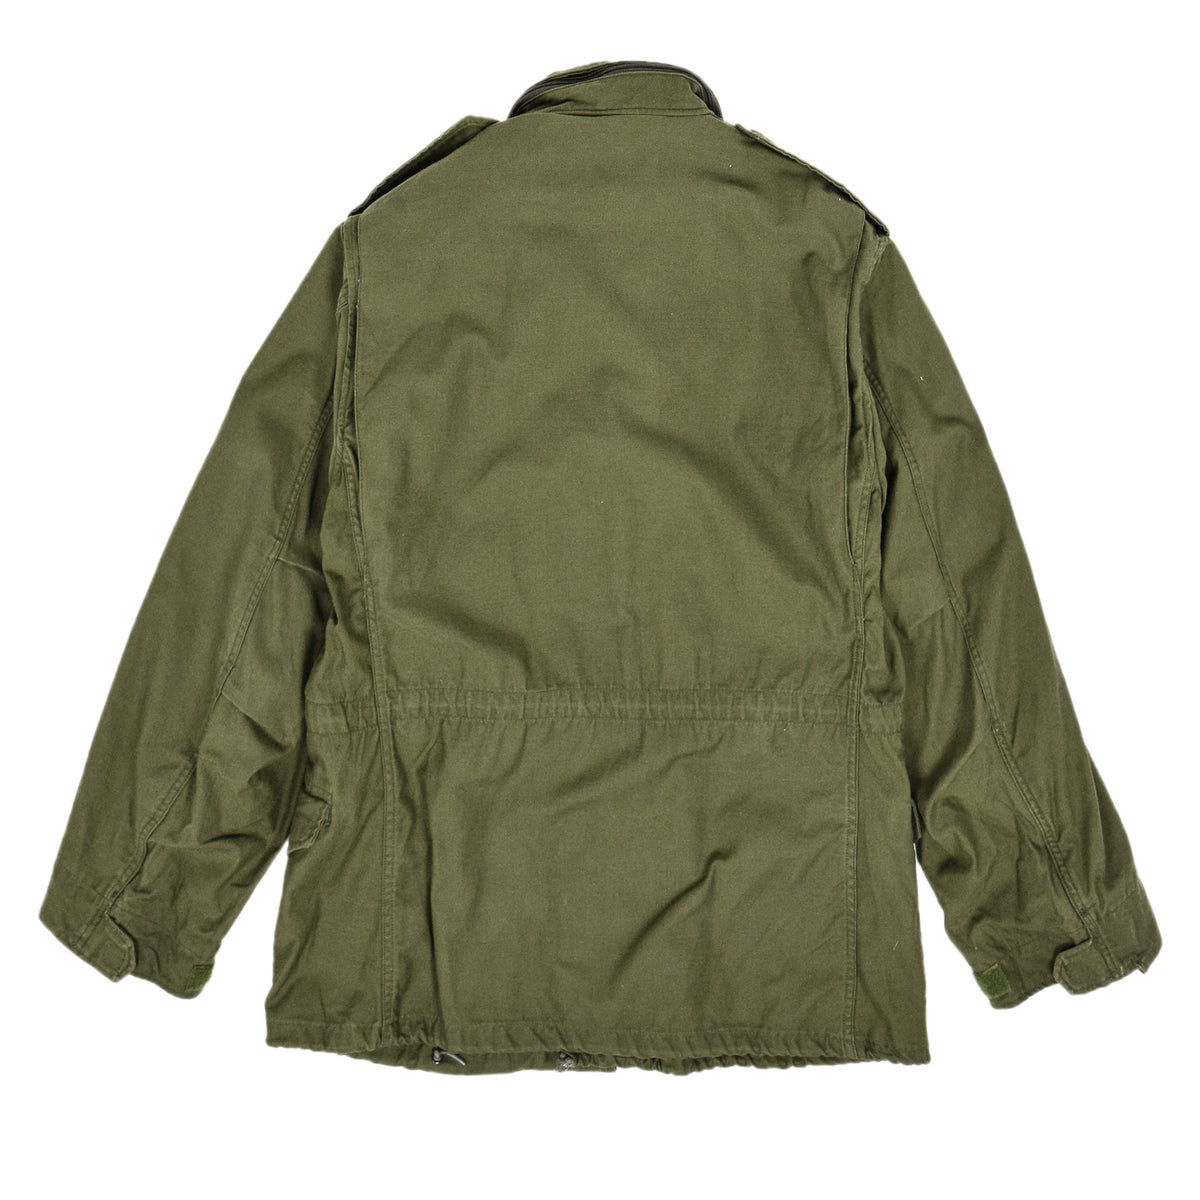 Vintage 80s M-65 Man's Field Cotton Sateen 0G-107 Green US Army Coat M back